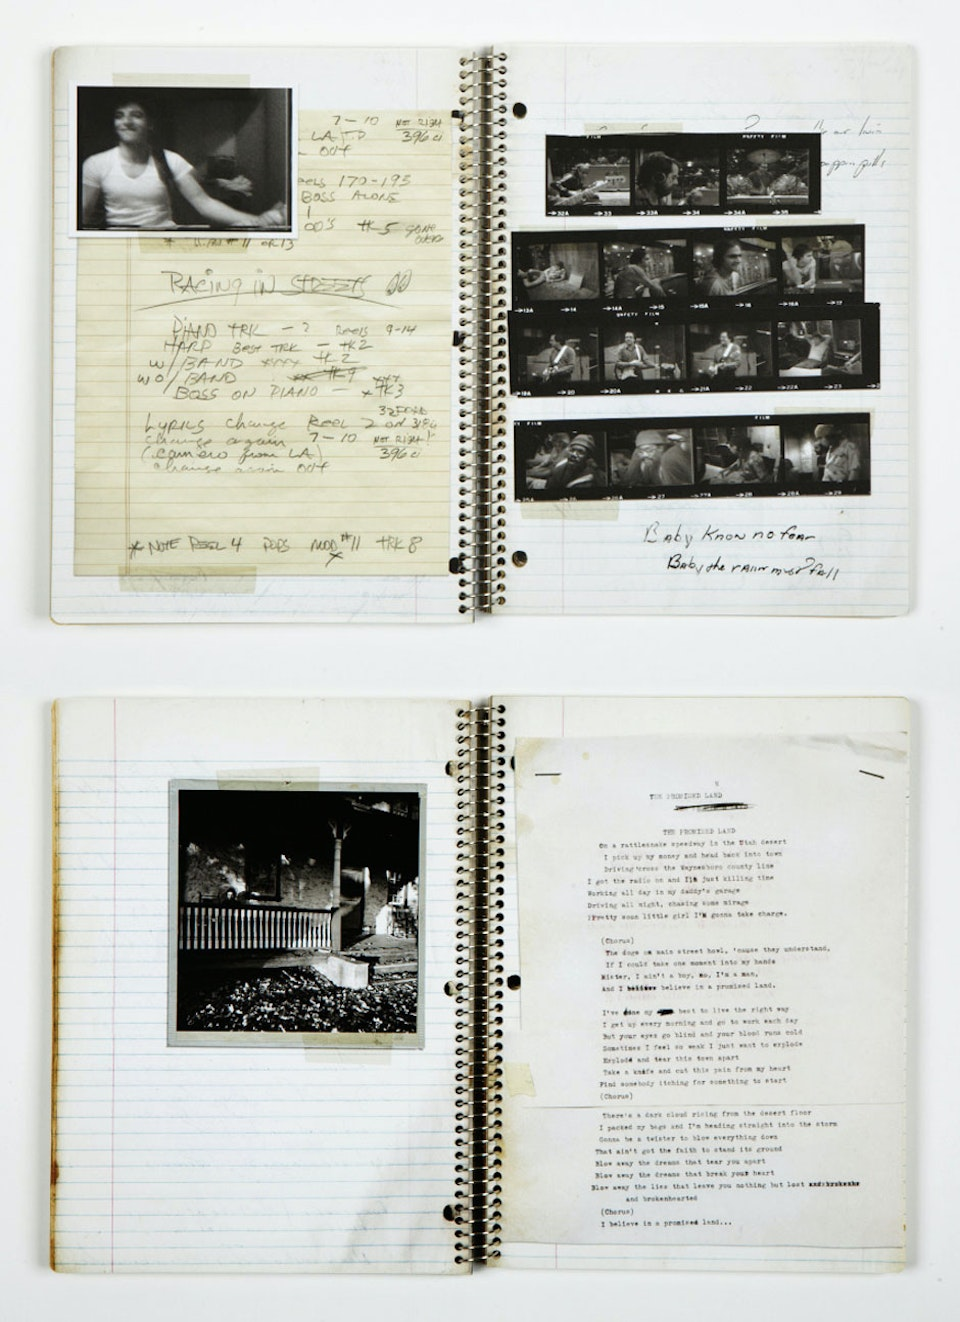 Grammy winning Darkness on the Edge of Town - Notebook spreads